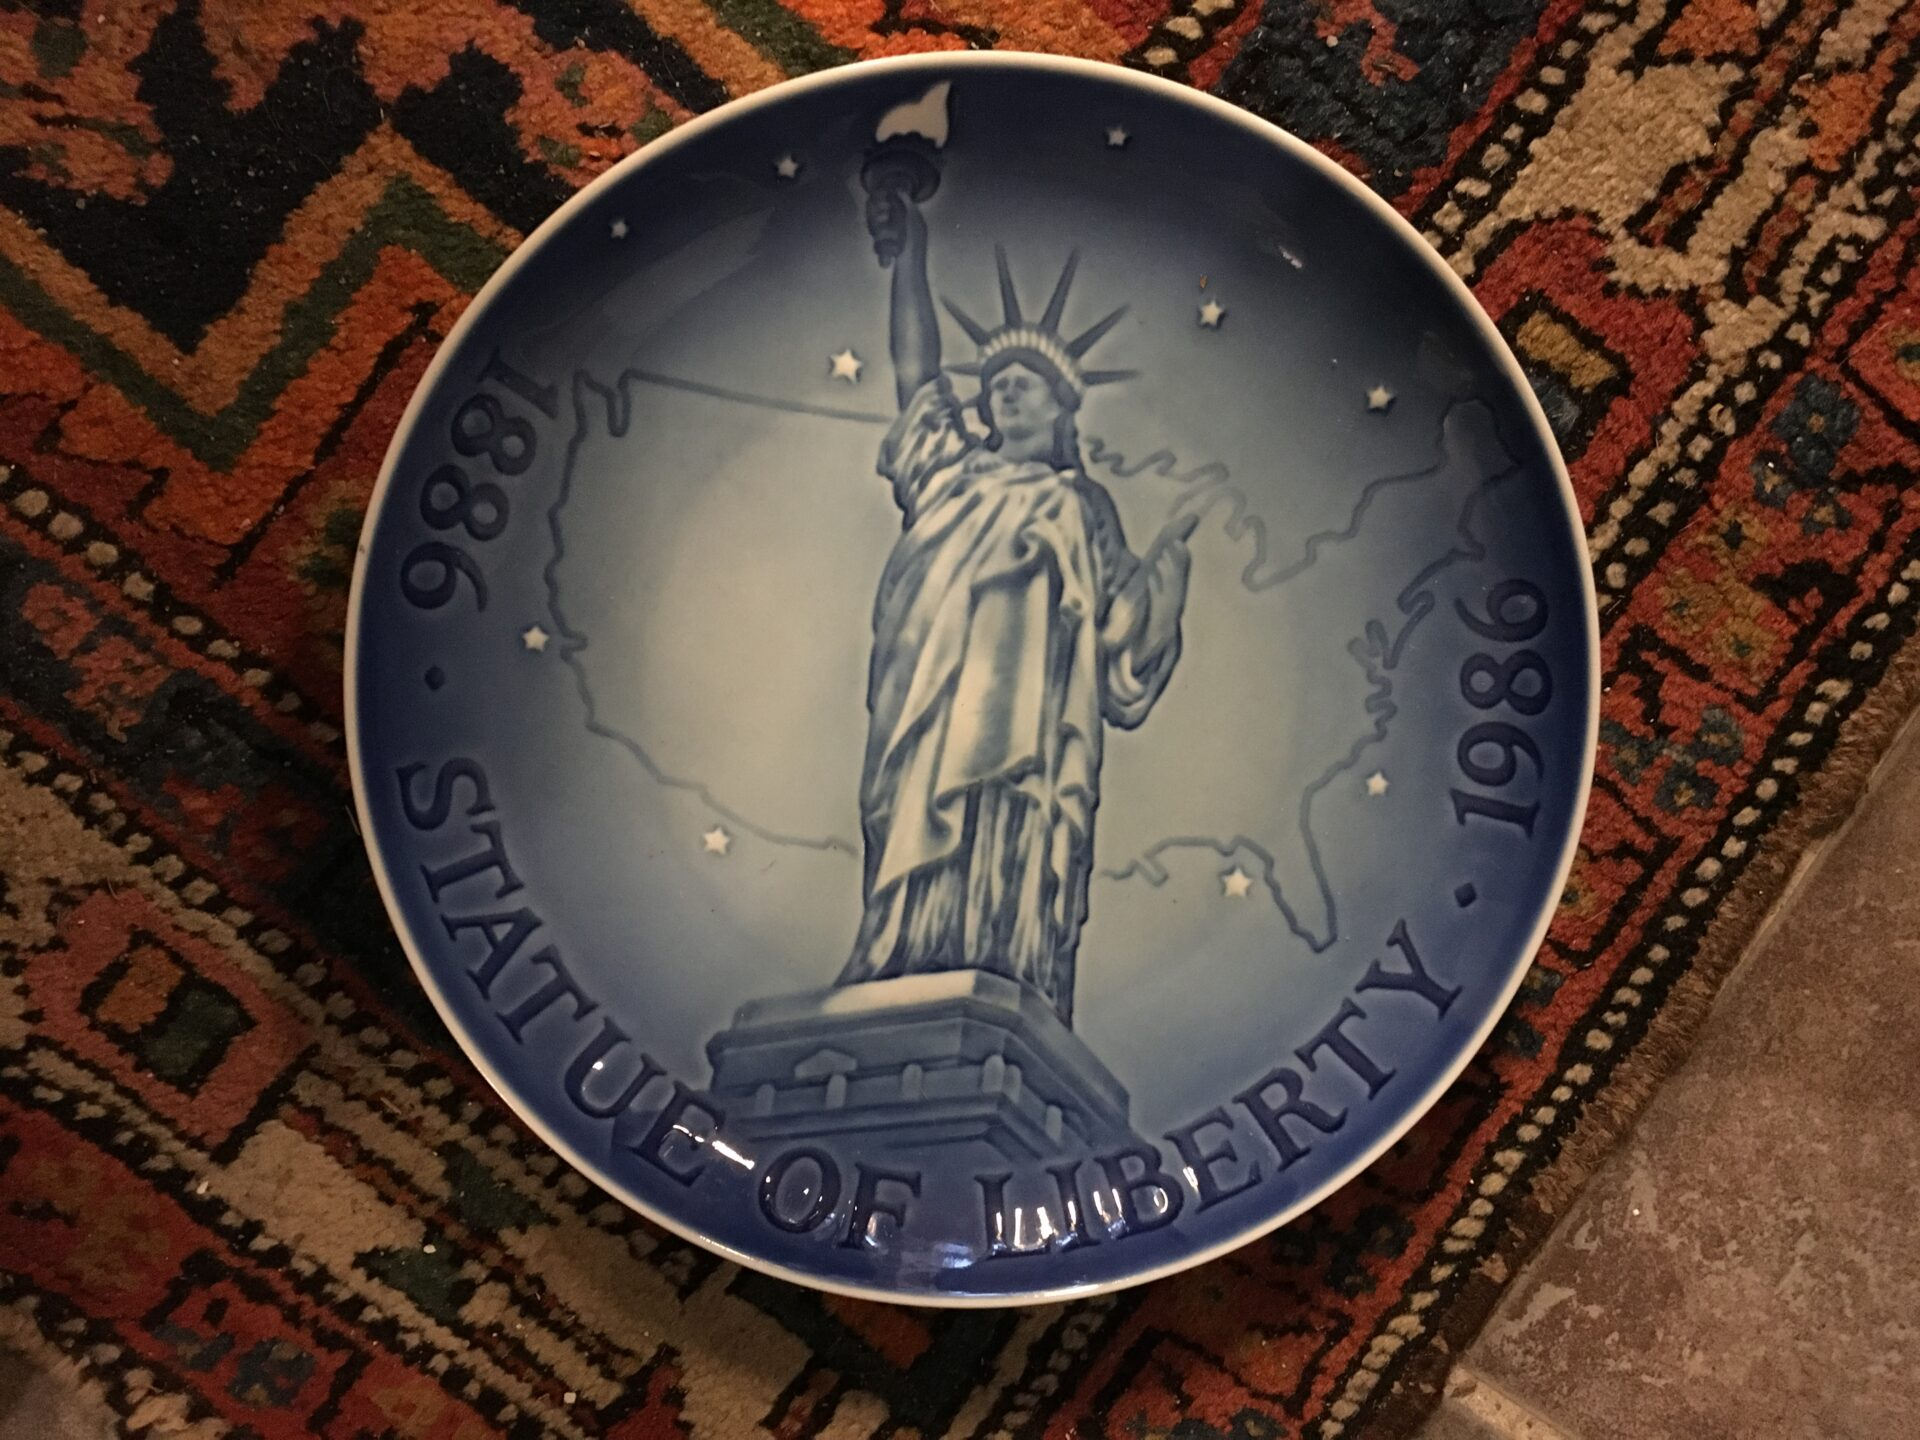 B&G Statue of Liberty 1886-1986, pris 150 kr